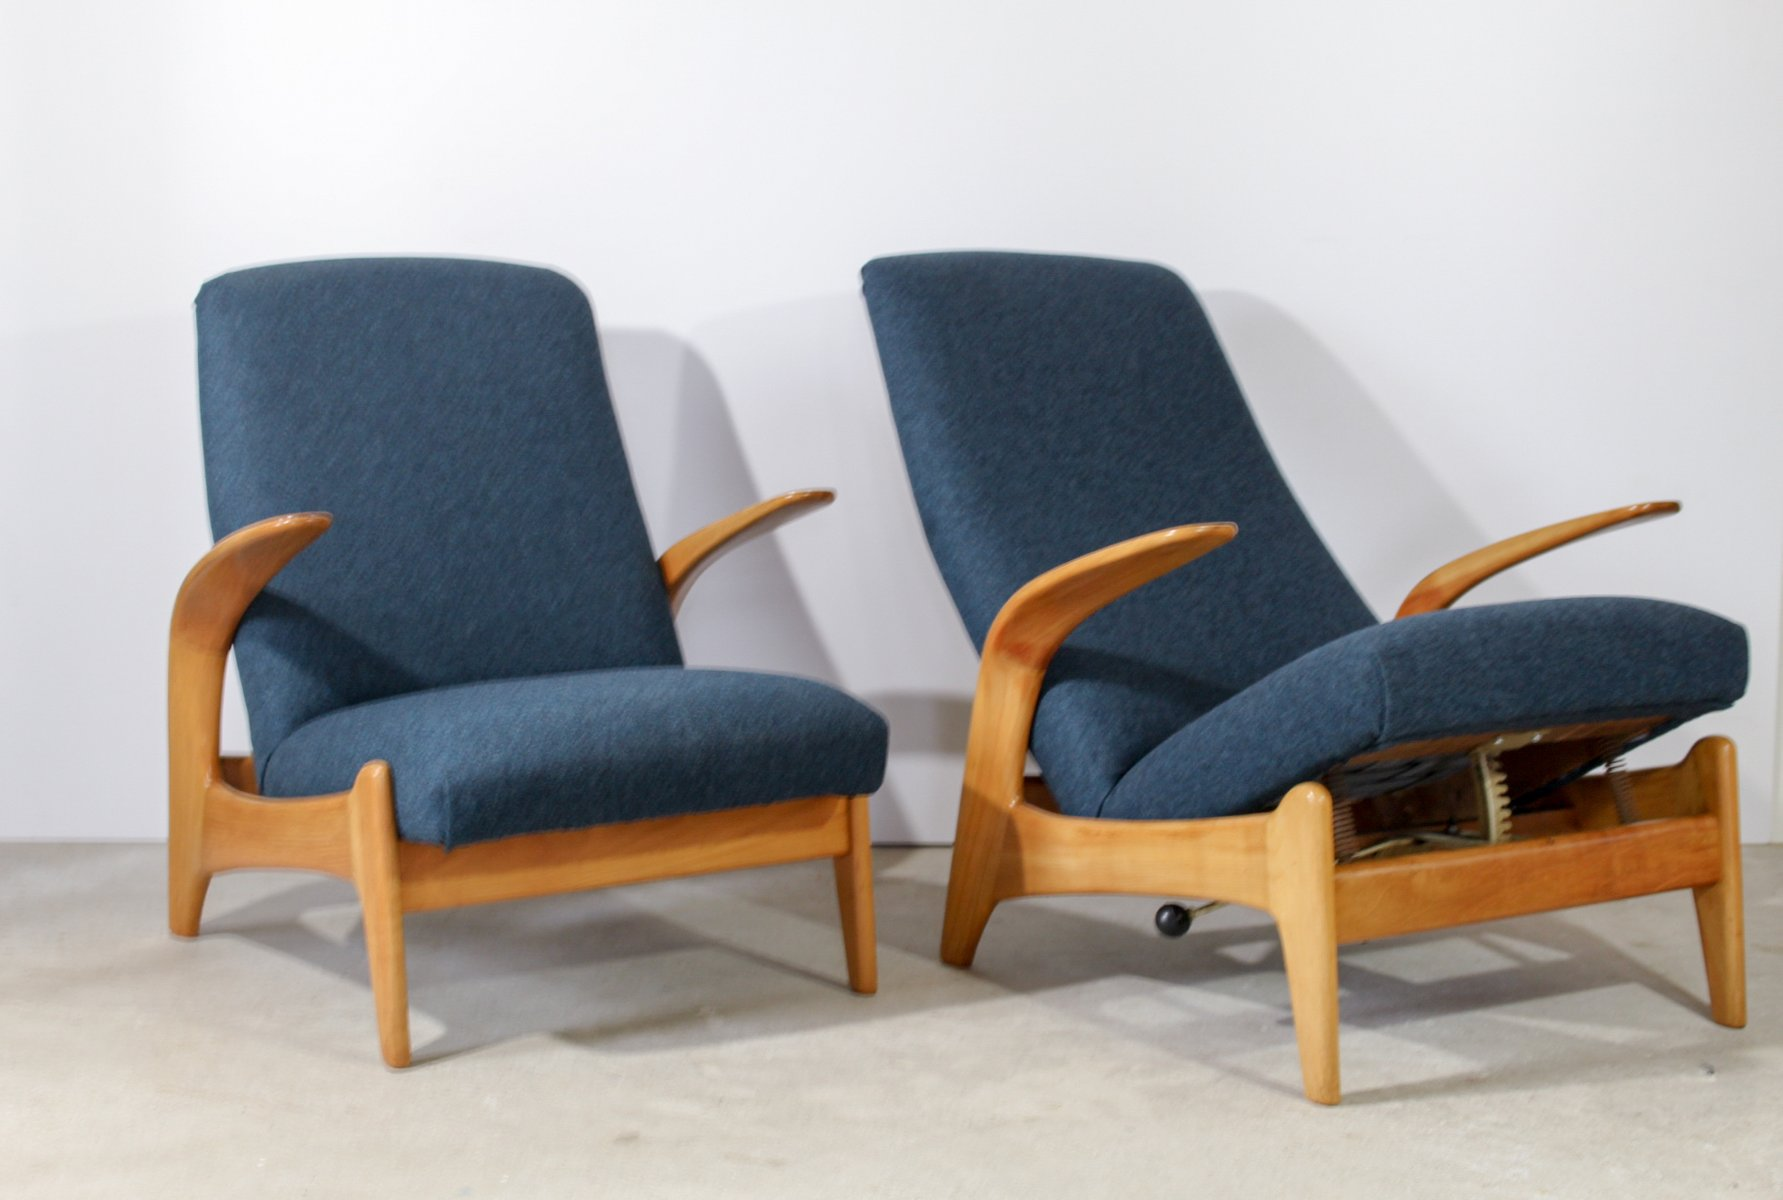 fauteuils scandinaves de gimson slater 1960s set de 2 en vente sur pamono. Black Bedroom Furniture Sets. Home Design Ideas